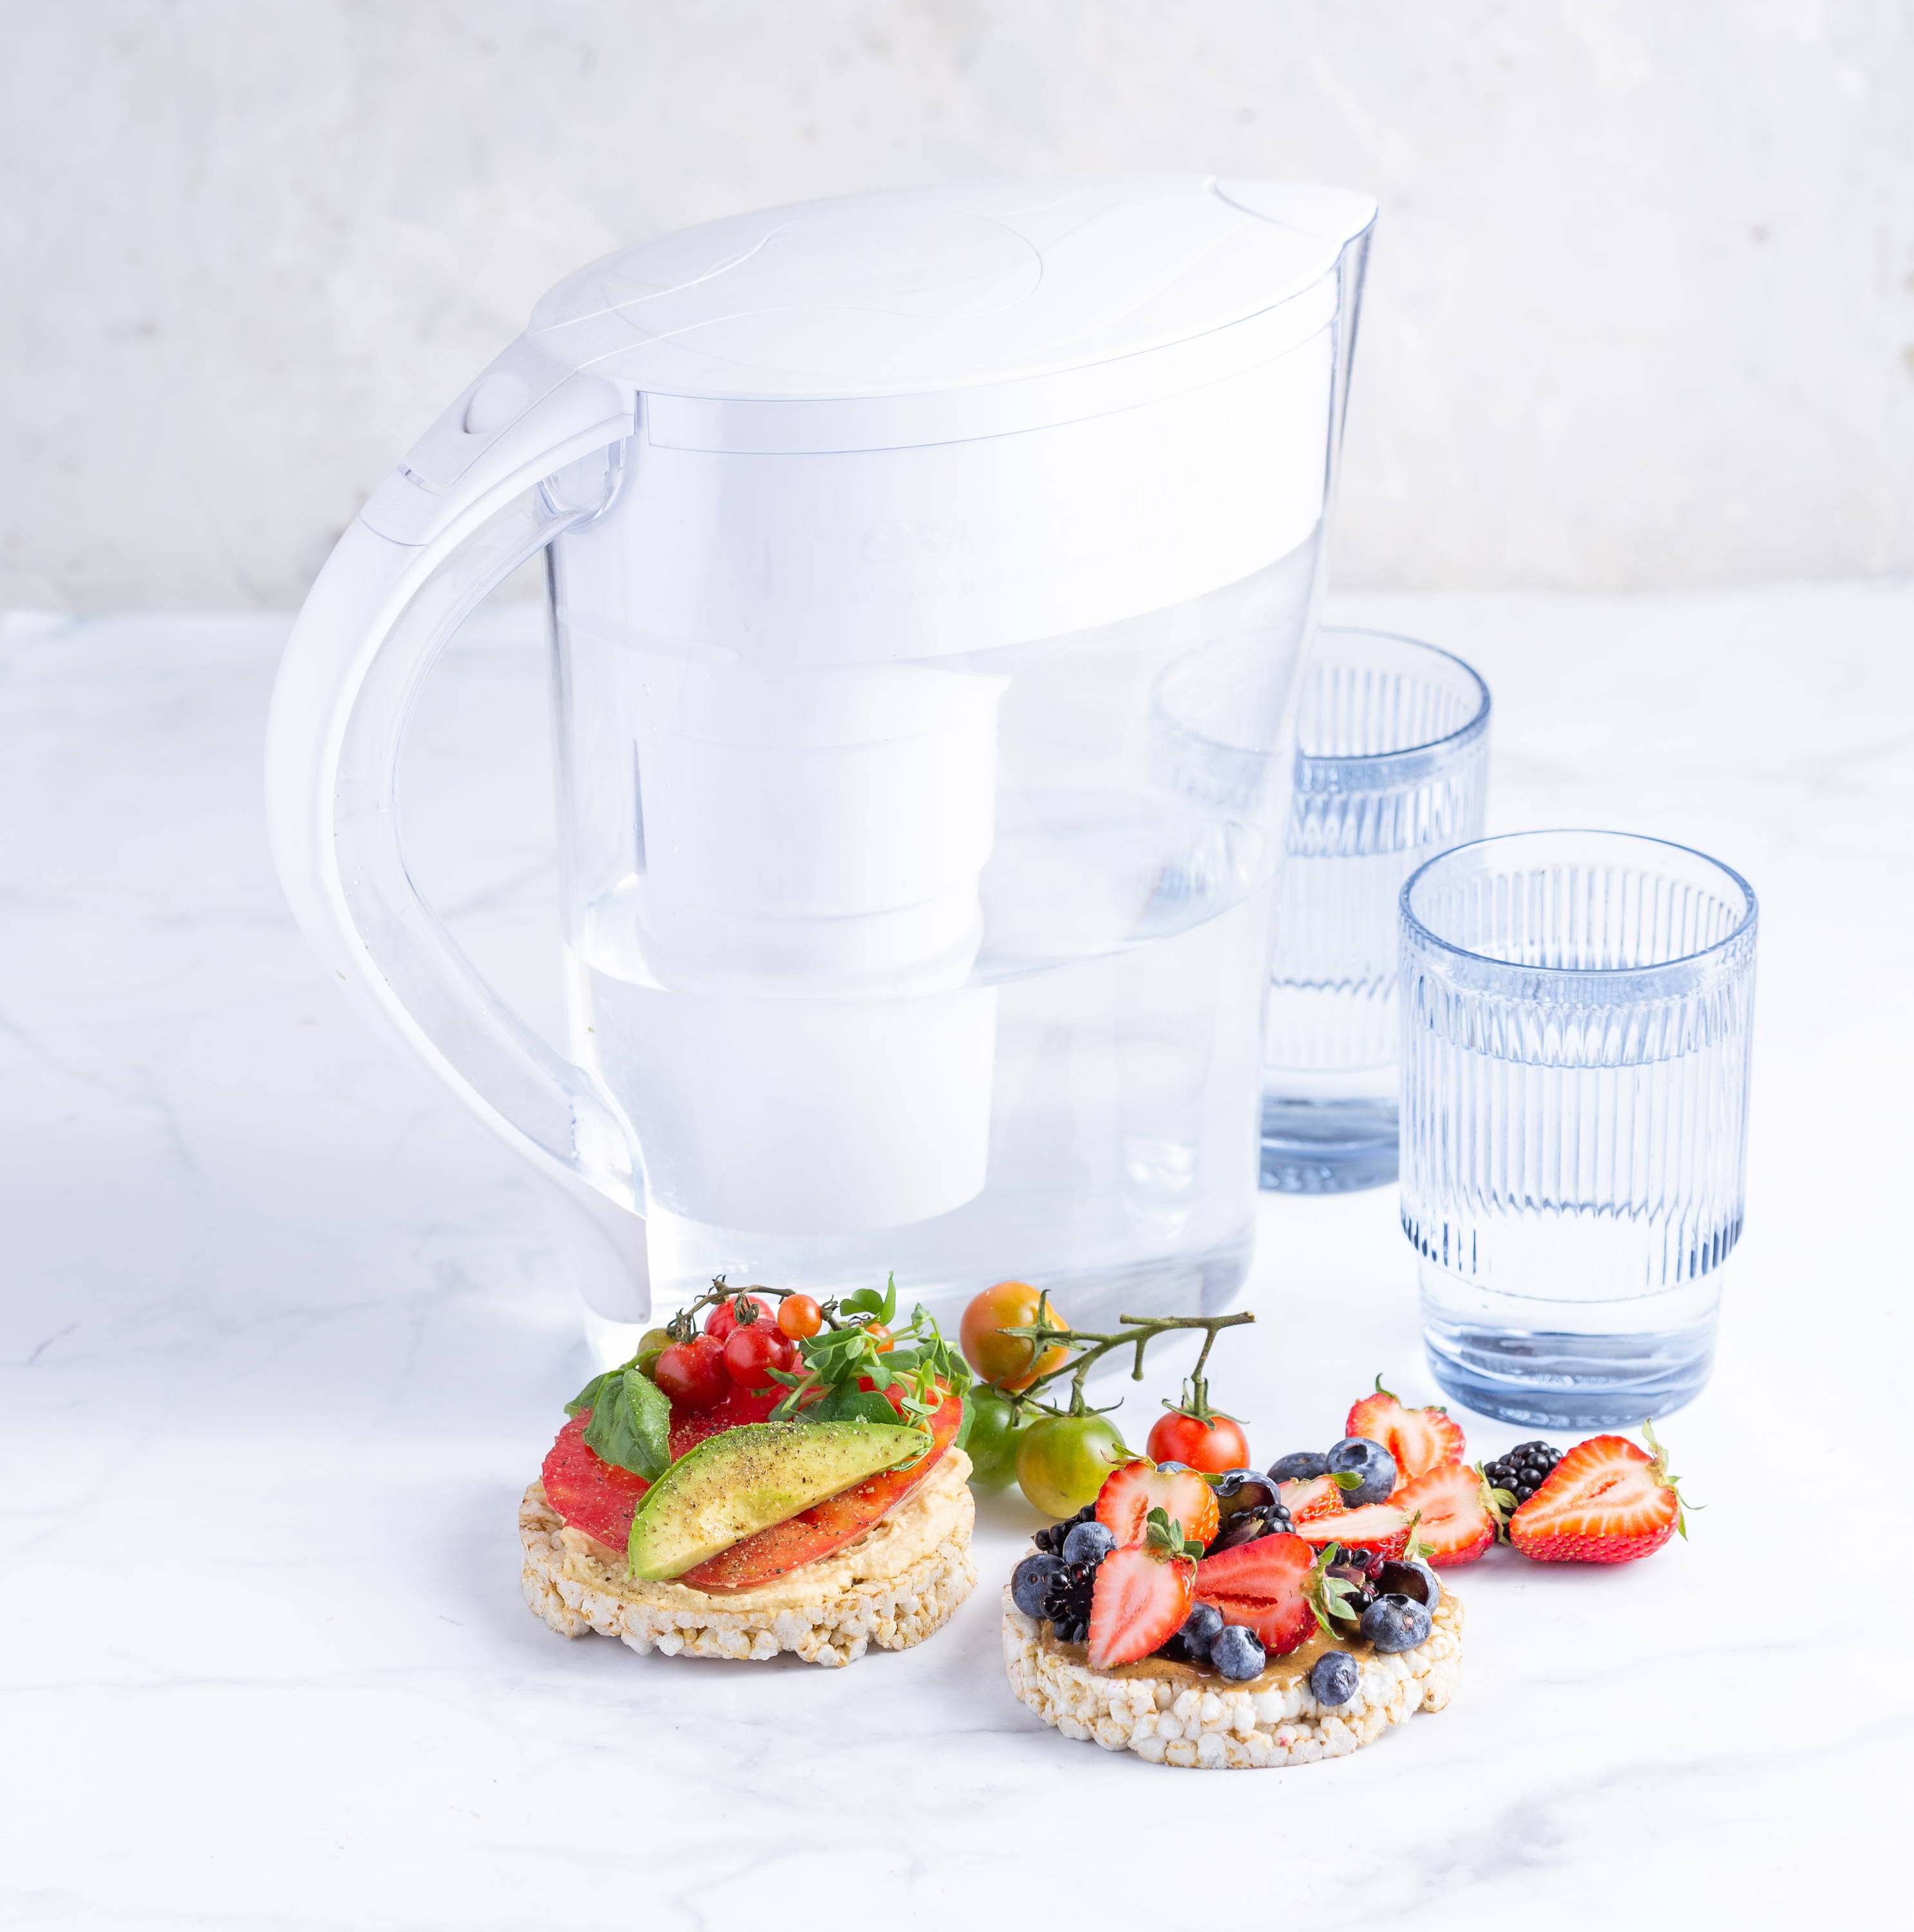 Water pitcher with glasses and food in front